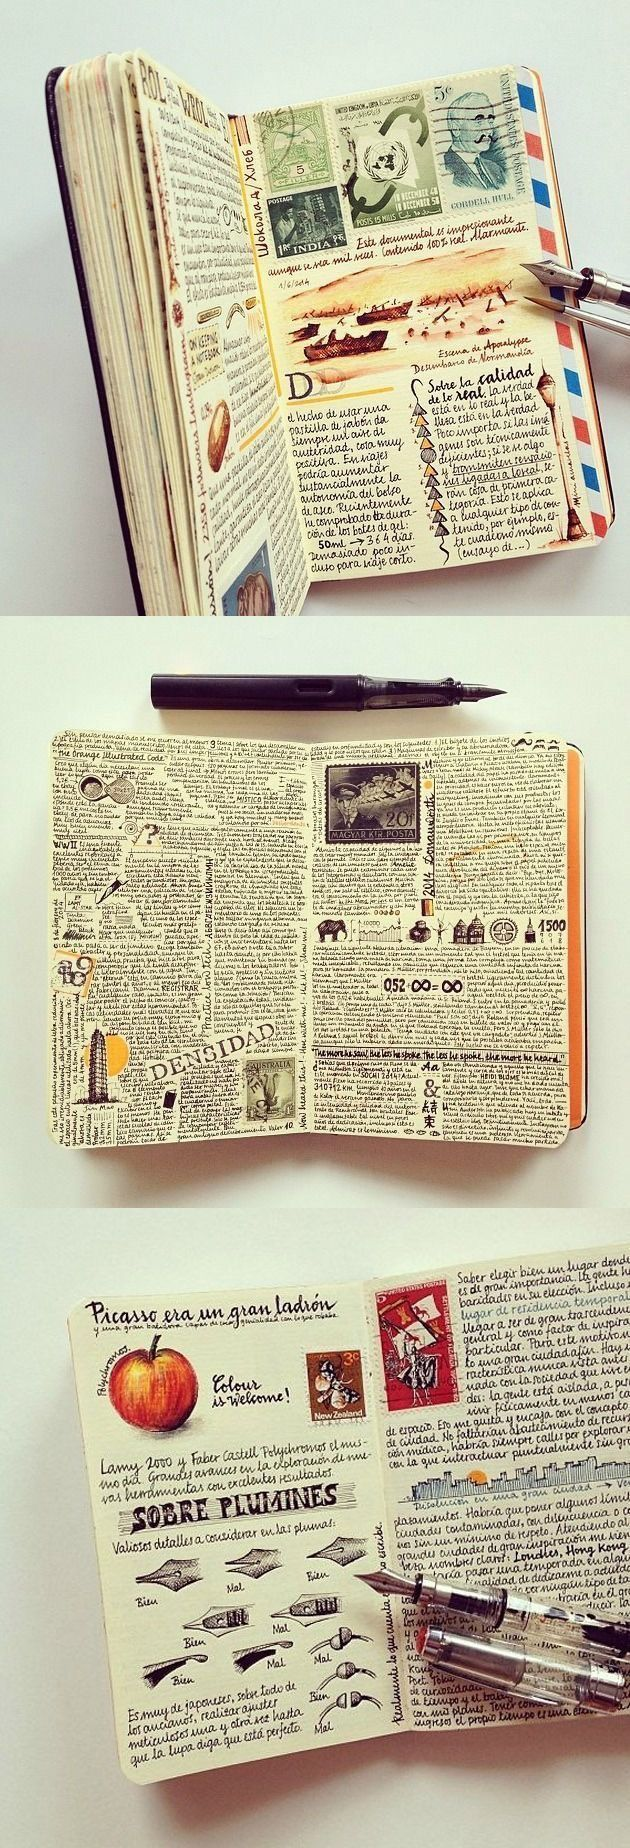 Record memories in columns on the same page. #traveljournal #artjournalinspiration